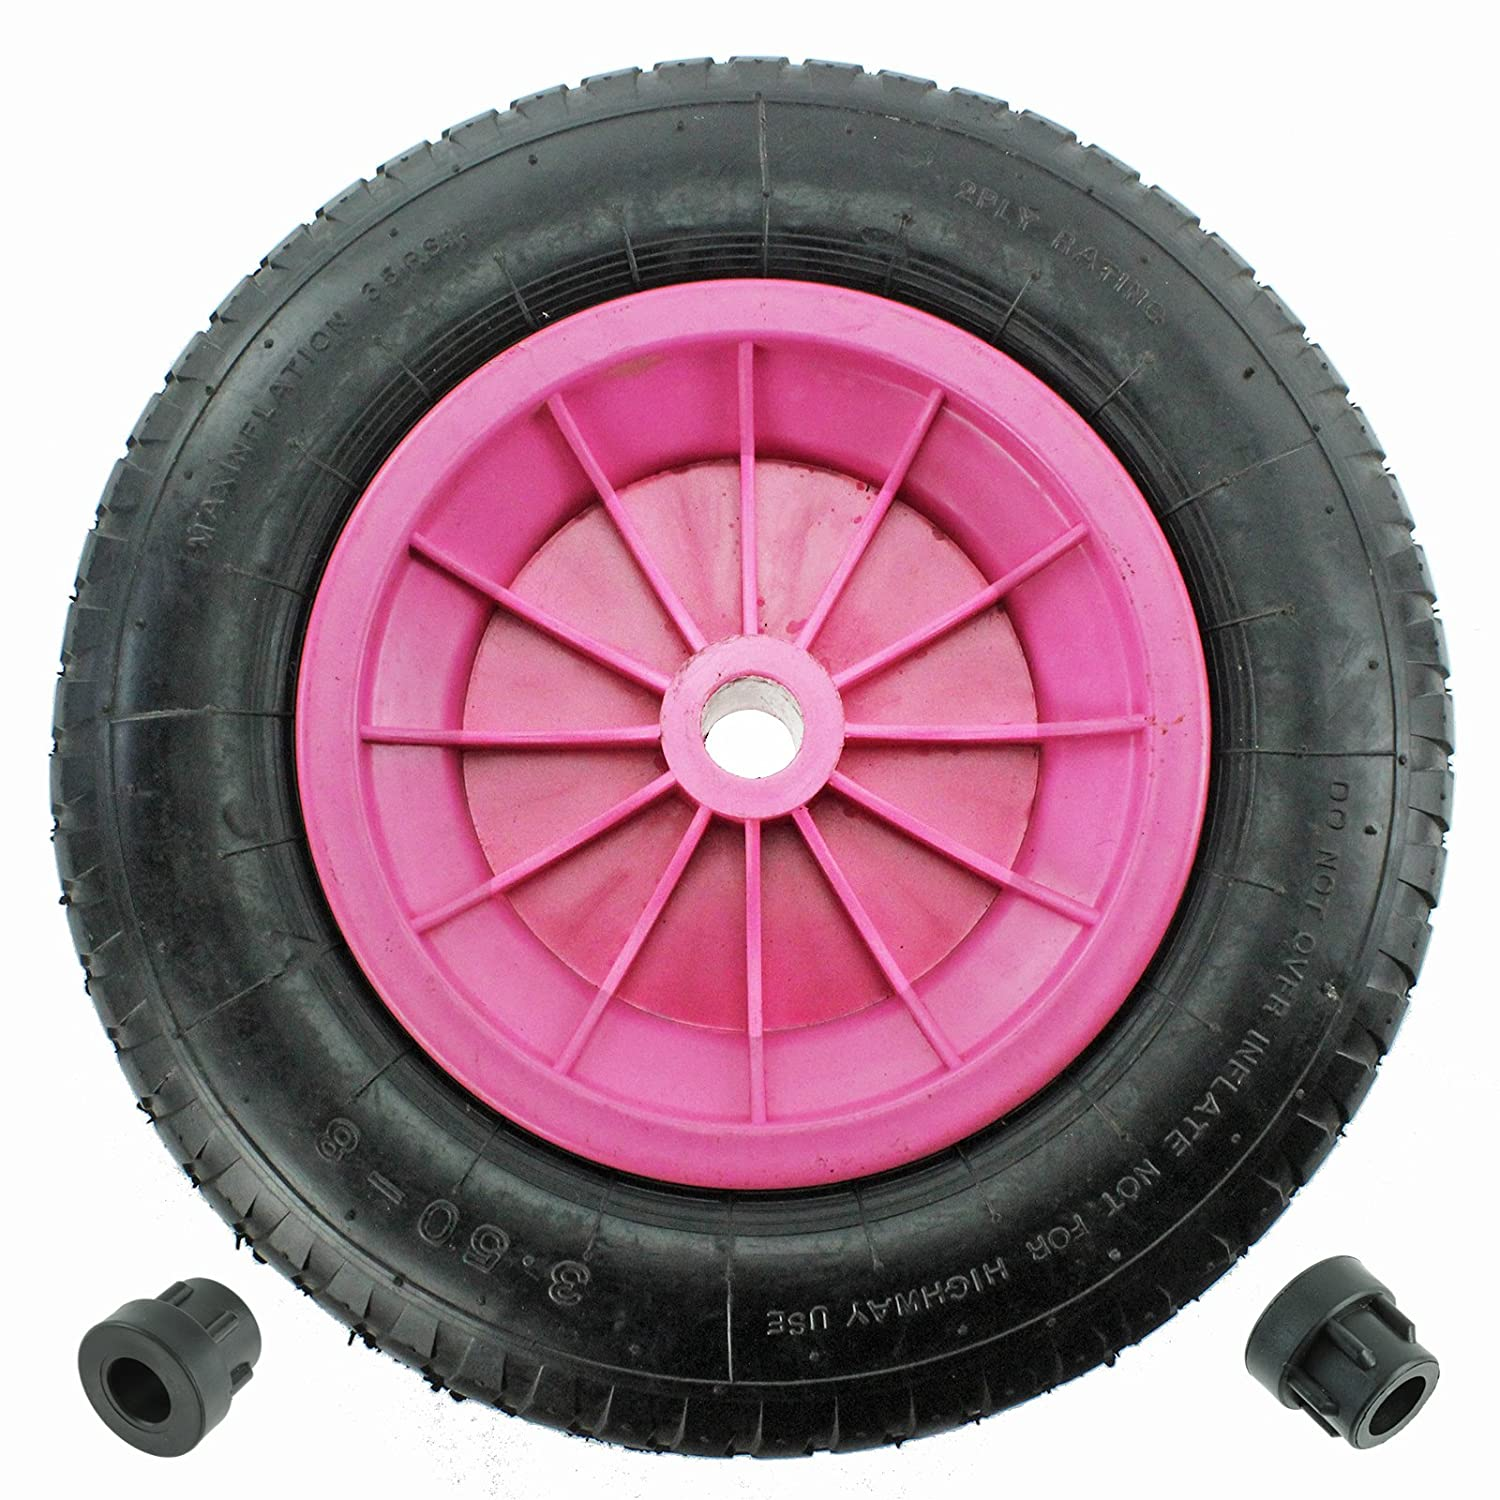 First4spares 14' 3.50 - 8 Complete Wheelbarrow Wheel, Inner Tube, Tyre & 1/2' Axle Reducer Bushes for Garden Trolley / Barrow / Go Cart / Trailer Truck (Pink) Tyre & 1/2 Axle Reducer Bushes for Garden Trolley / Barrow / Go Cart / Trailer Truck (Pink)